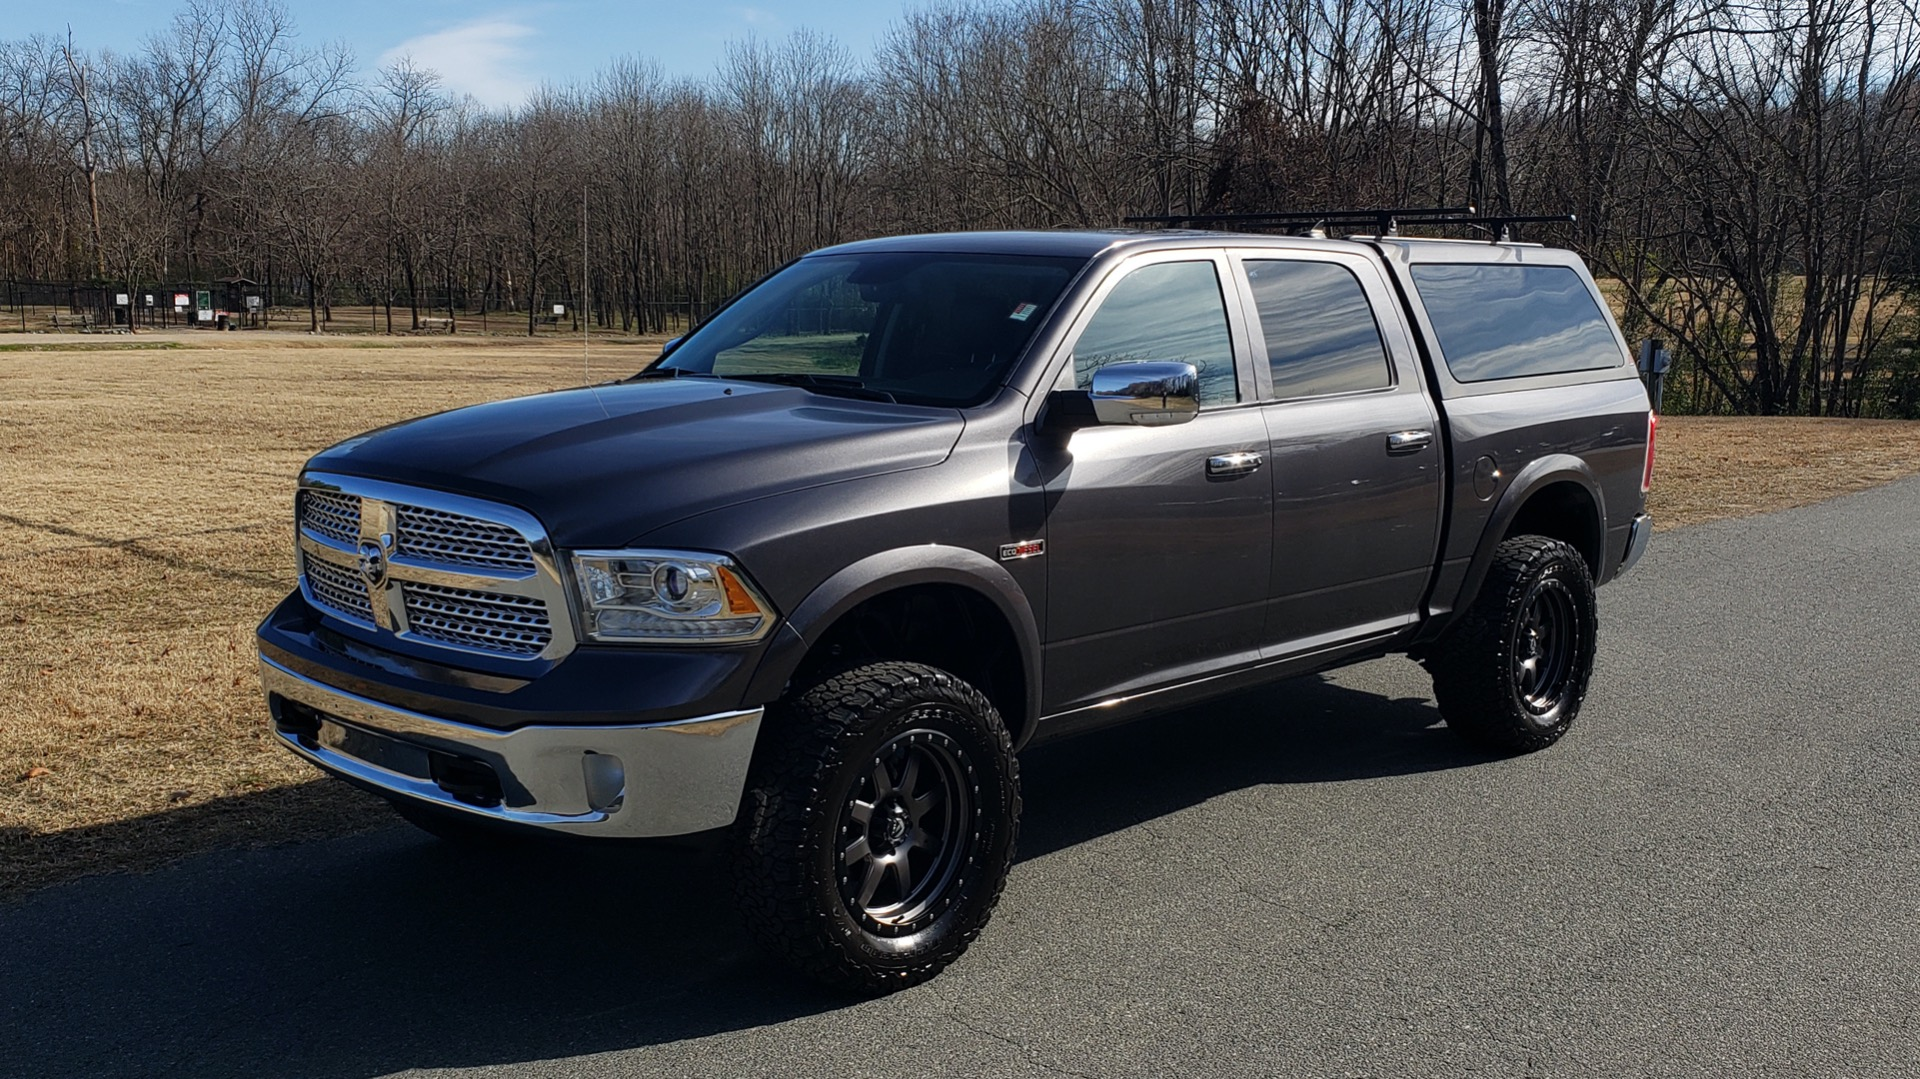 Used 2016 Ram 1500 LARAMIE CC 4X4 / DIESEL/LIFT/CUSTOM for sale Sold at Formula Imports in Charlotte NC 28227 2